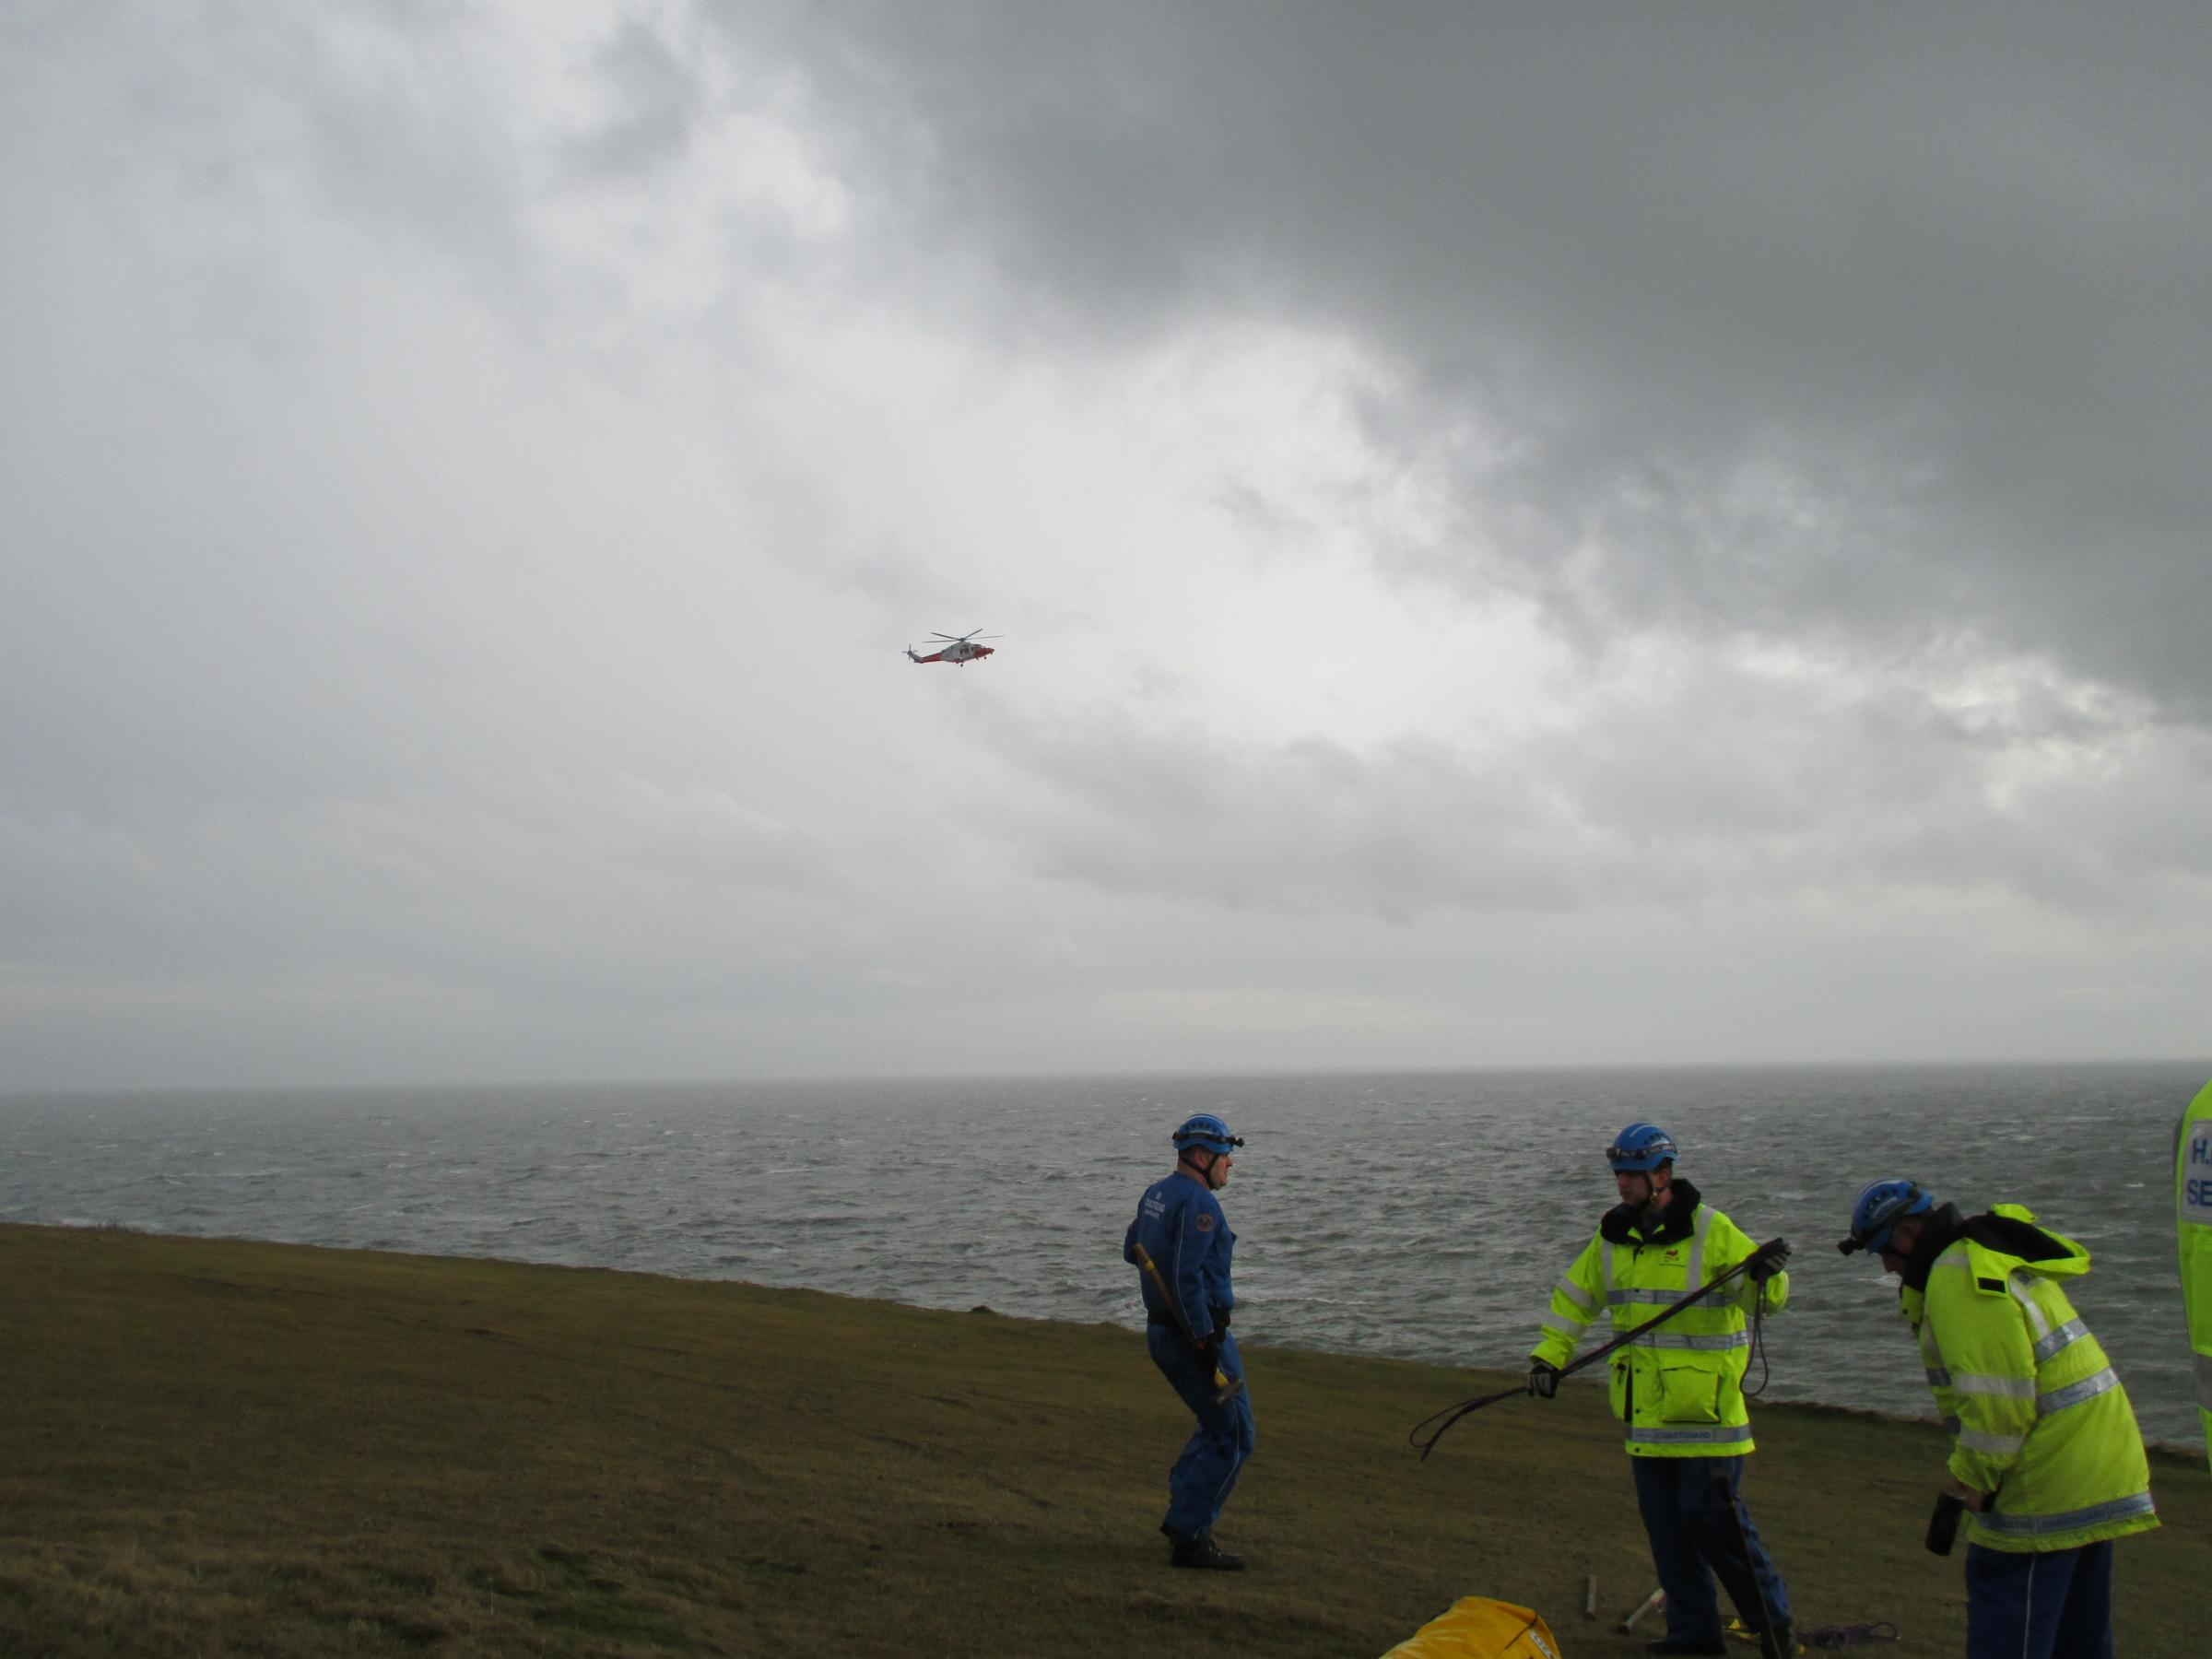 Climber in trouble airlifted to safety by Coastguard helicopter